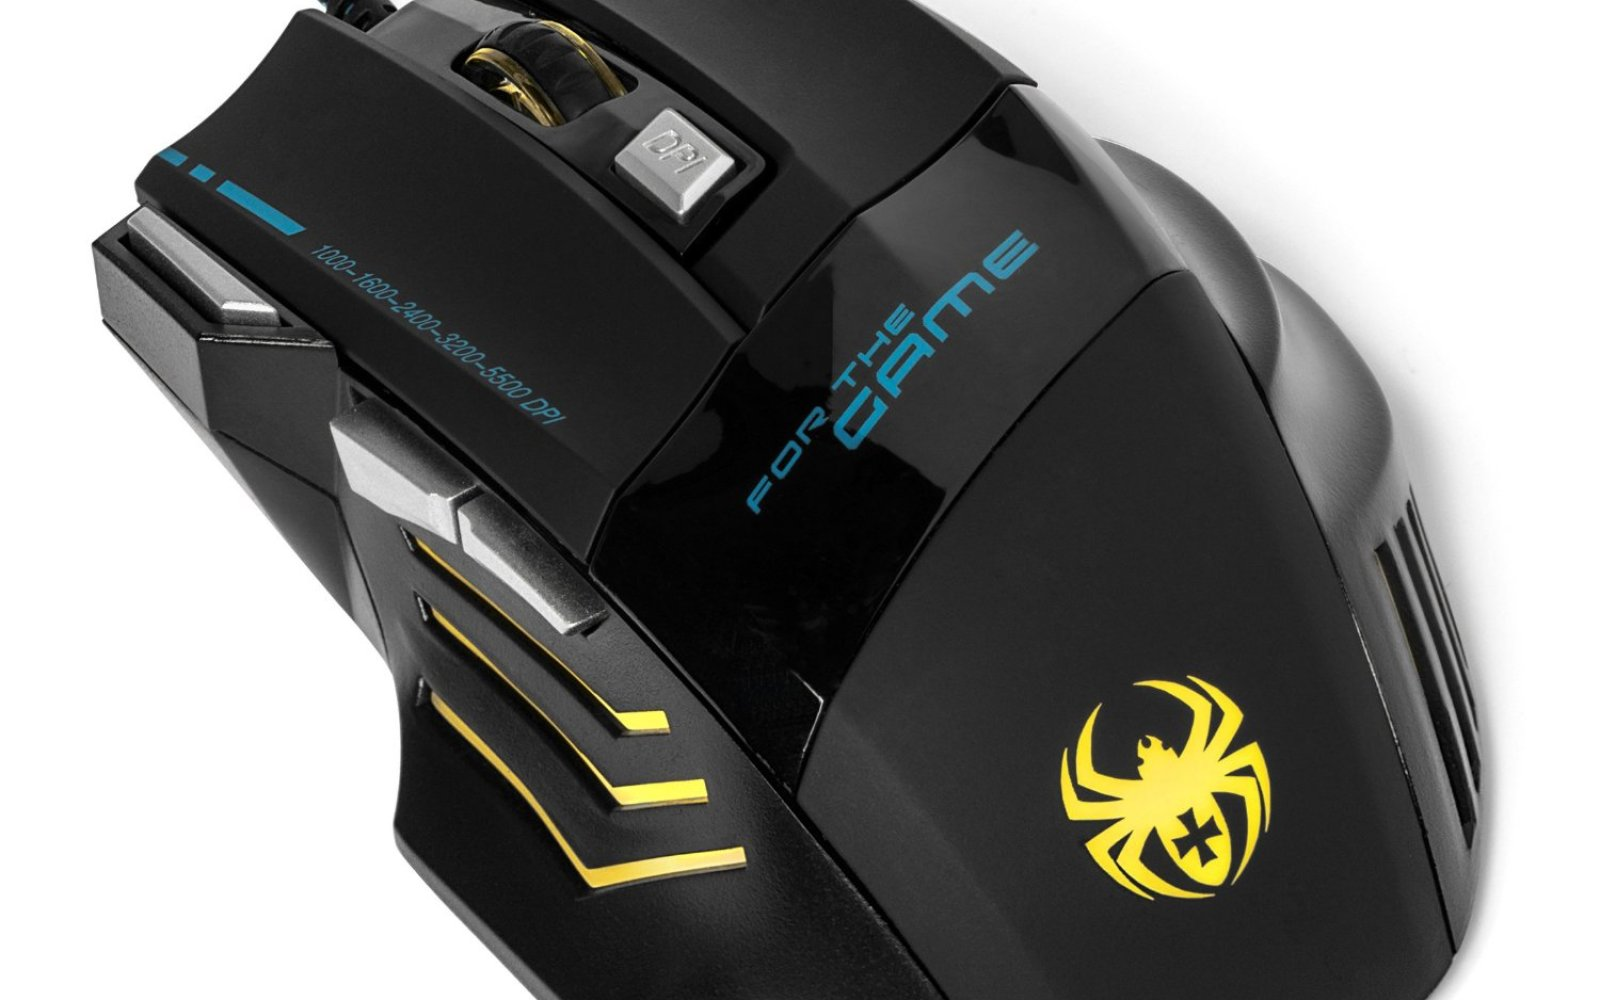 Kingtop 5500 DPI Optical Gaming Mouse w/7 Button Side Control, 5 Respiring LEDs: $9 Prime shipped